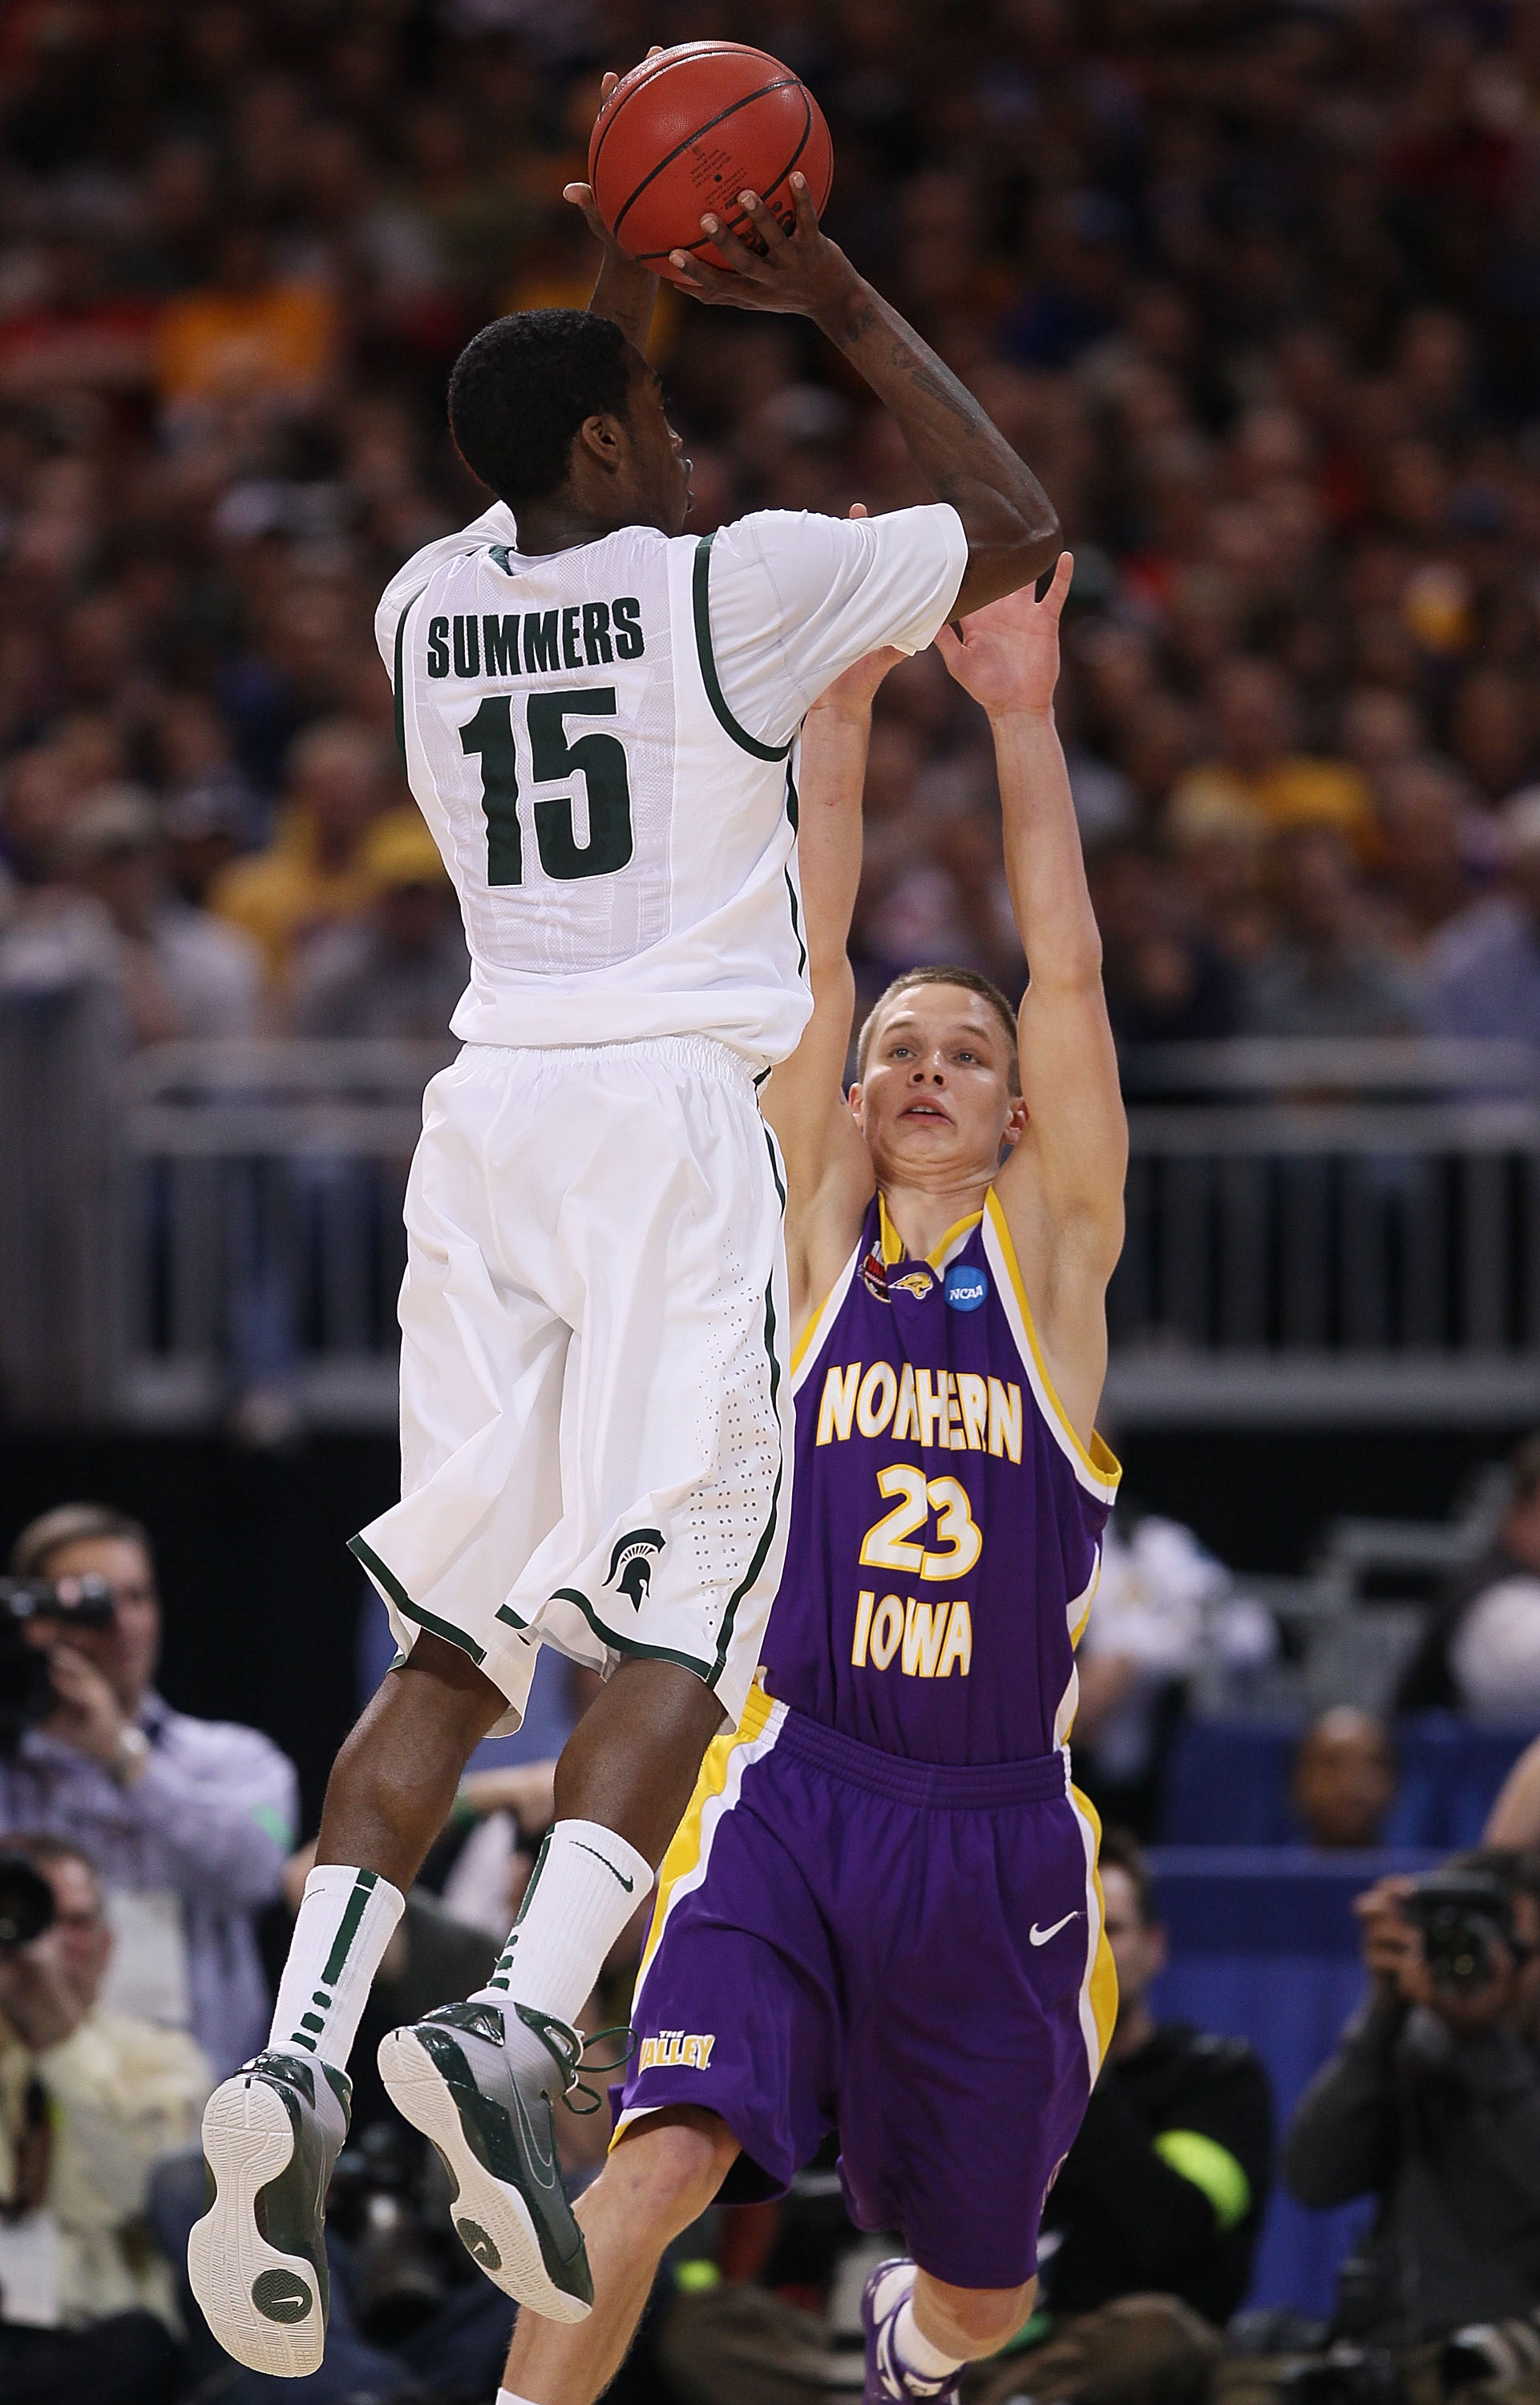 ST. LOUIS - MARCH 26:  Marc Sonnen #23 of the Northern Iowa Panthers tries to block a shot by Durrell Summers #15 of the Michigan State Spartans during the midwest regional semifinal of the 2010 NCAA men's basketball tournament at the Edward Jones Dome on